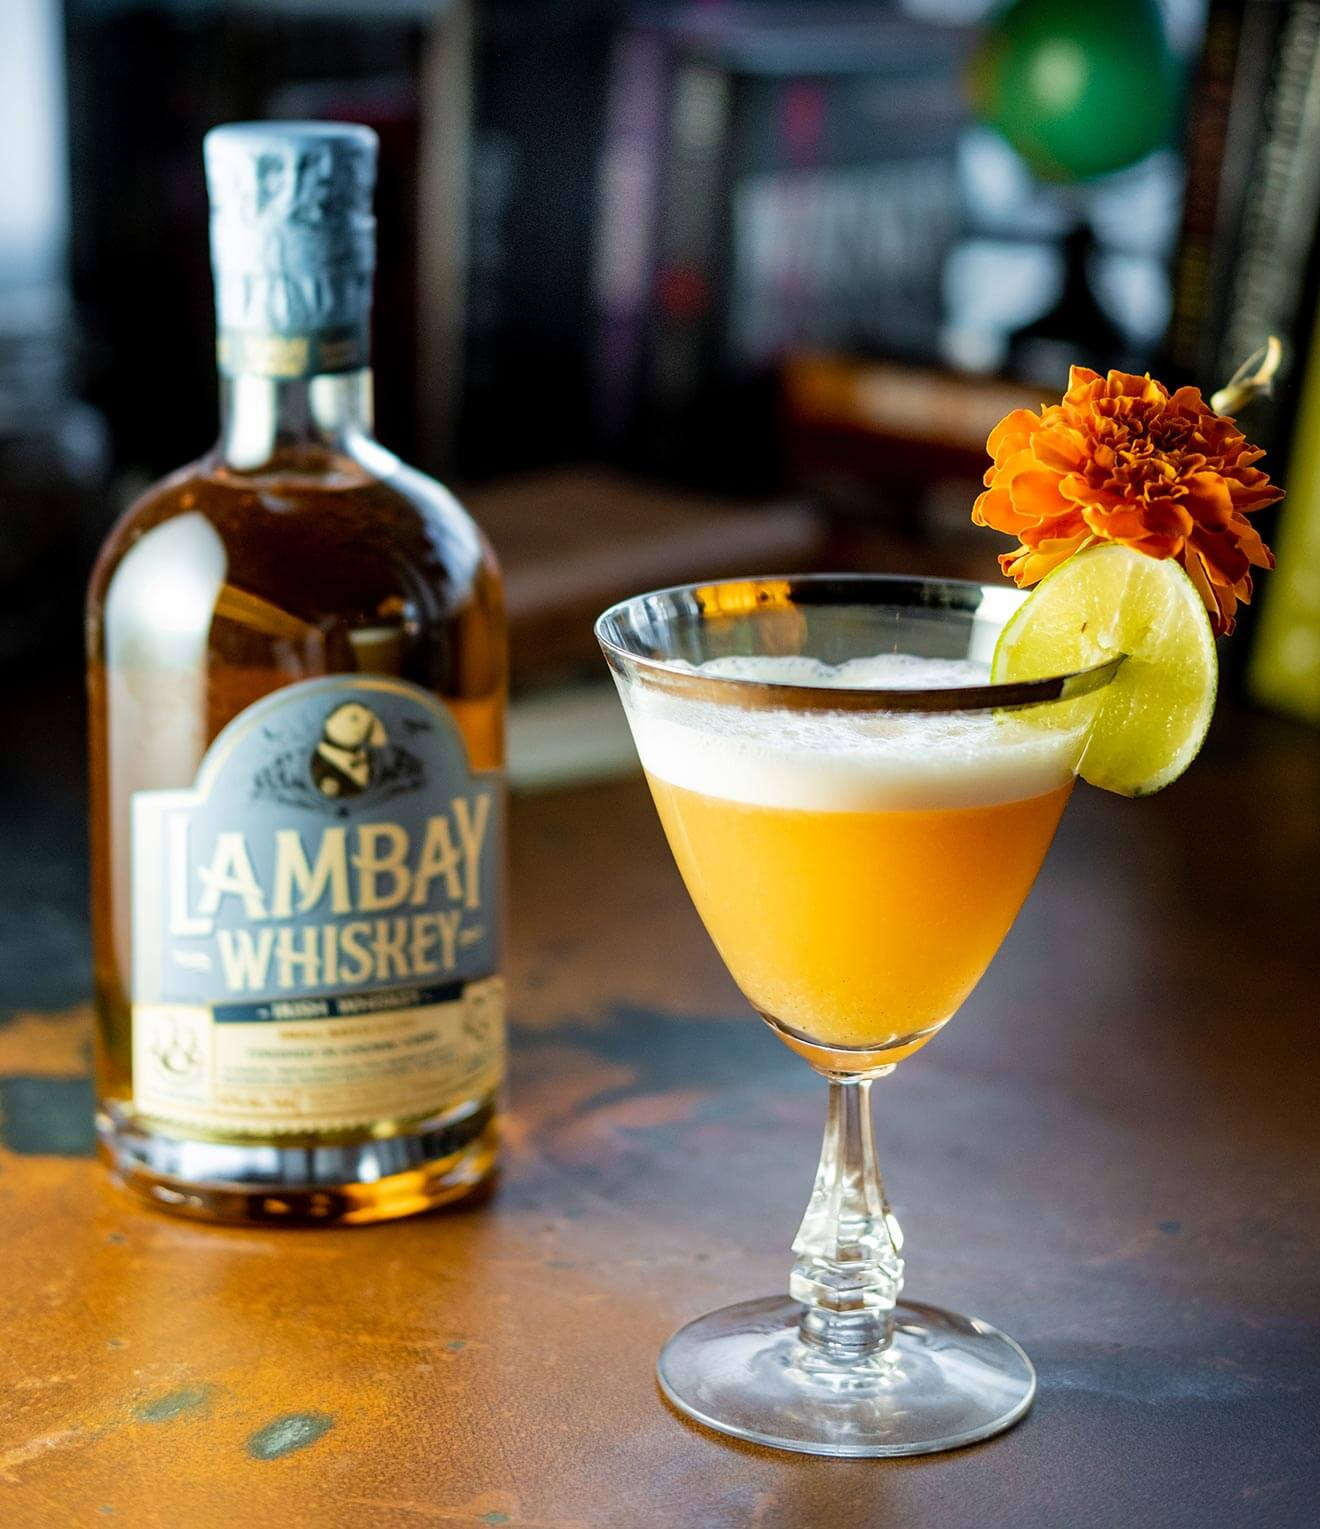 Sassy Irishman, cocktail with lambay whiskey bottle